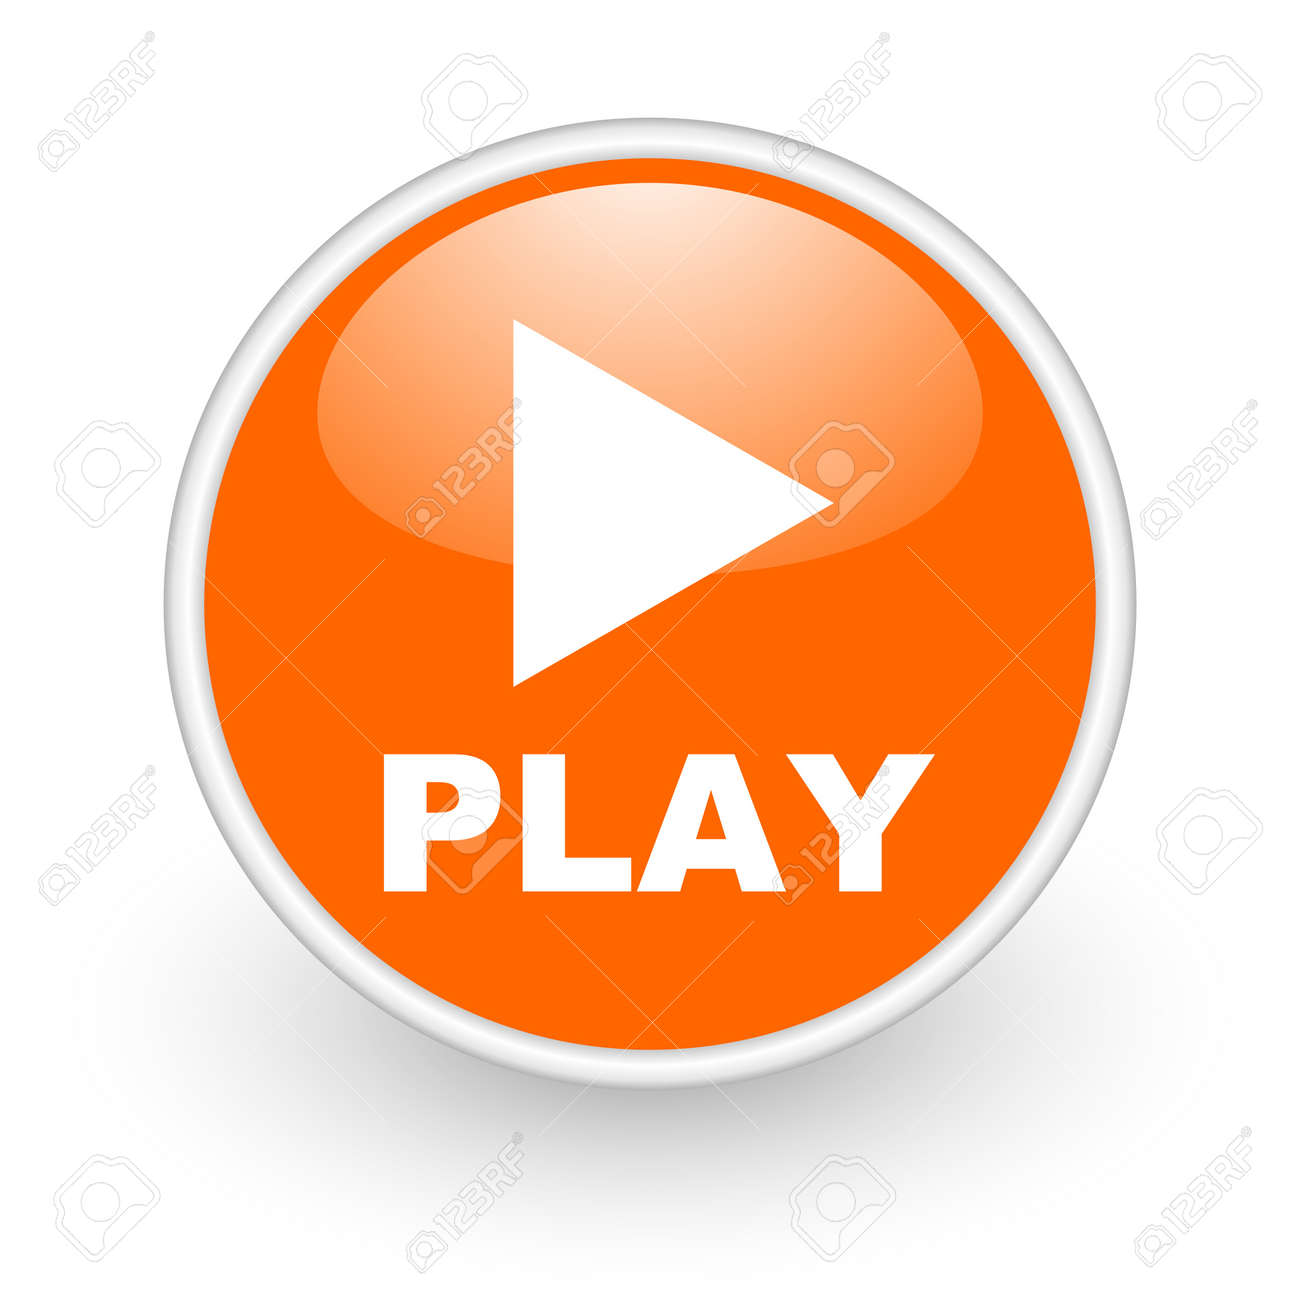 play orange circle glossy web icon on white background Stock Photo - 17761157